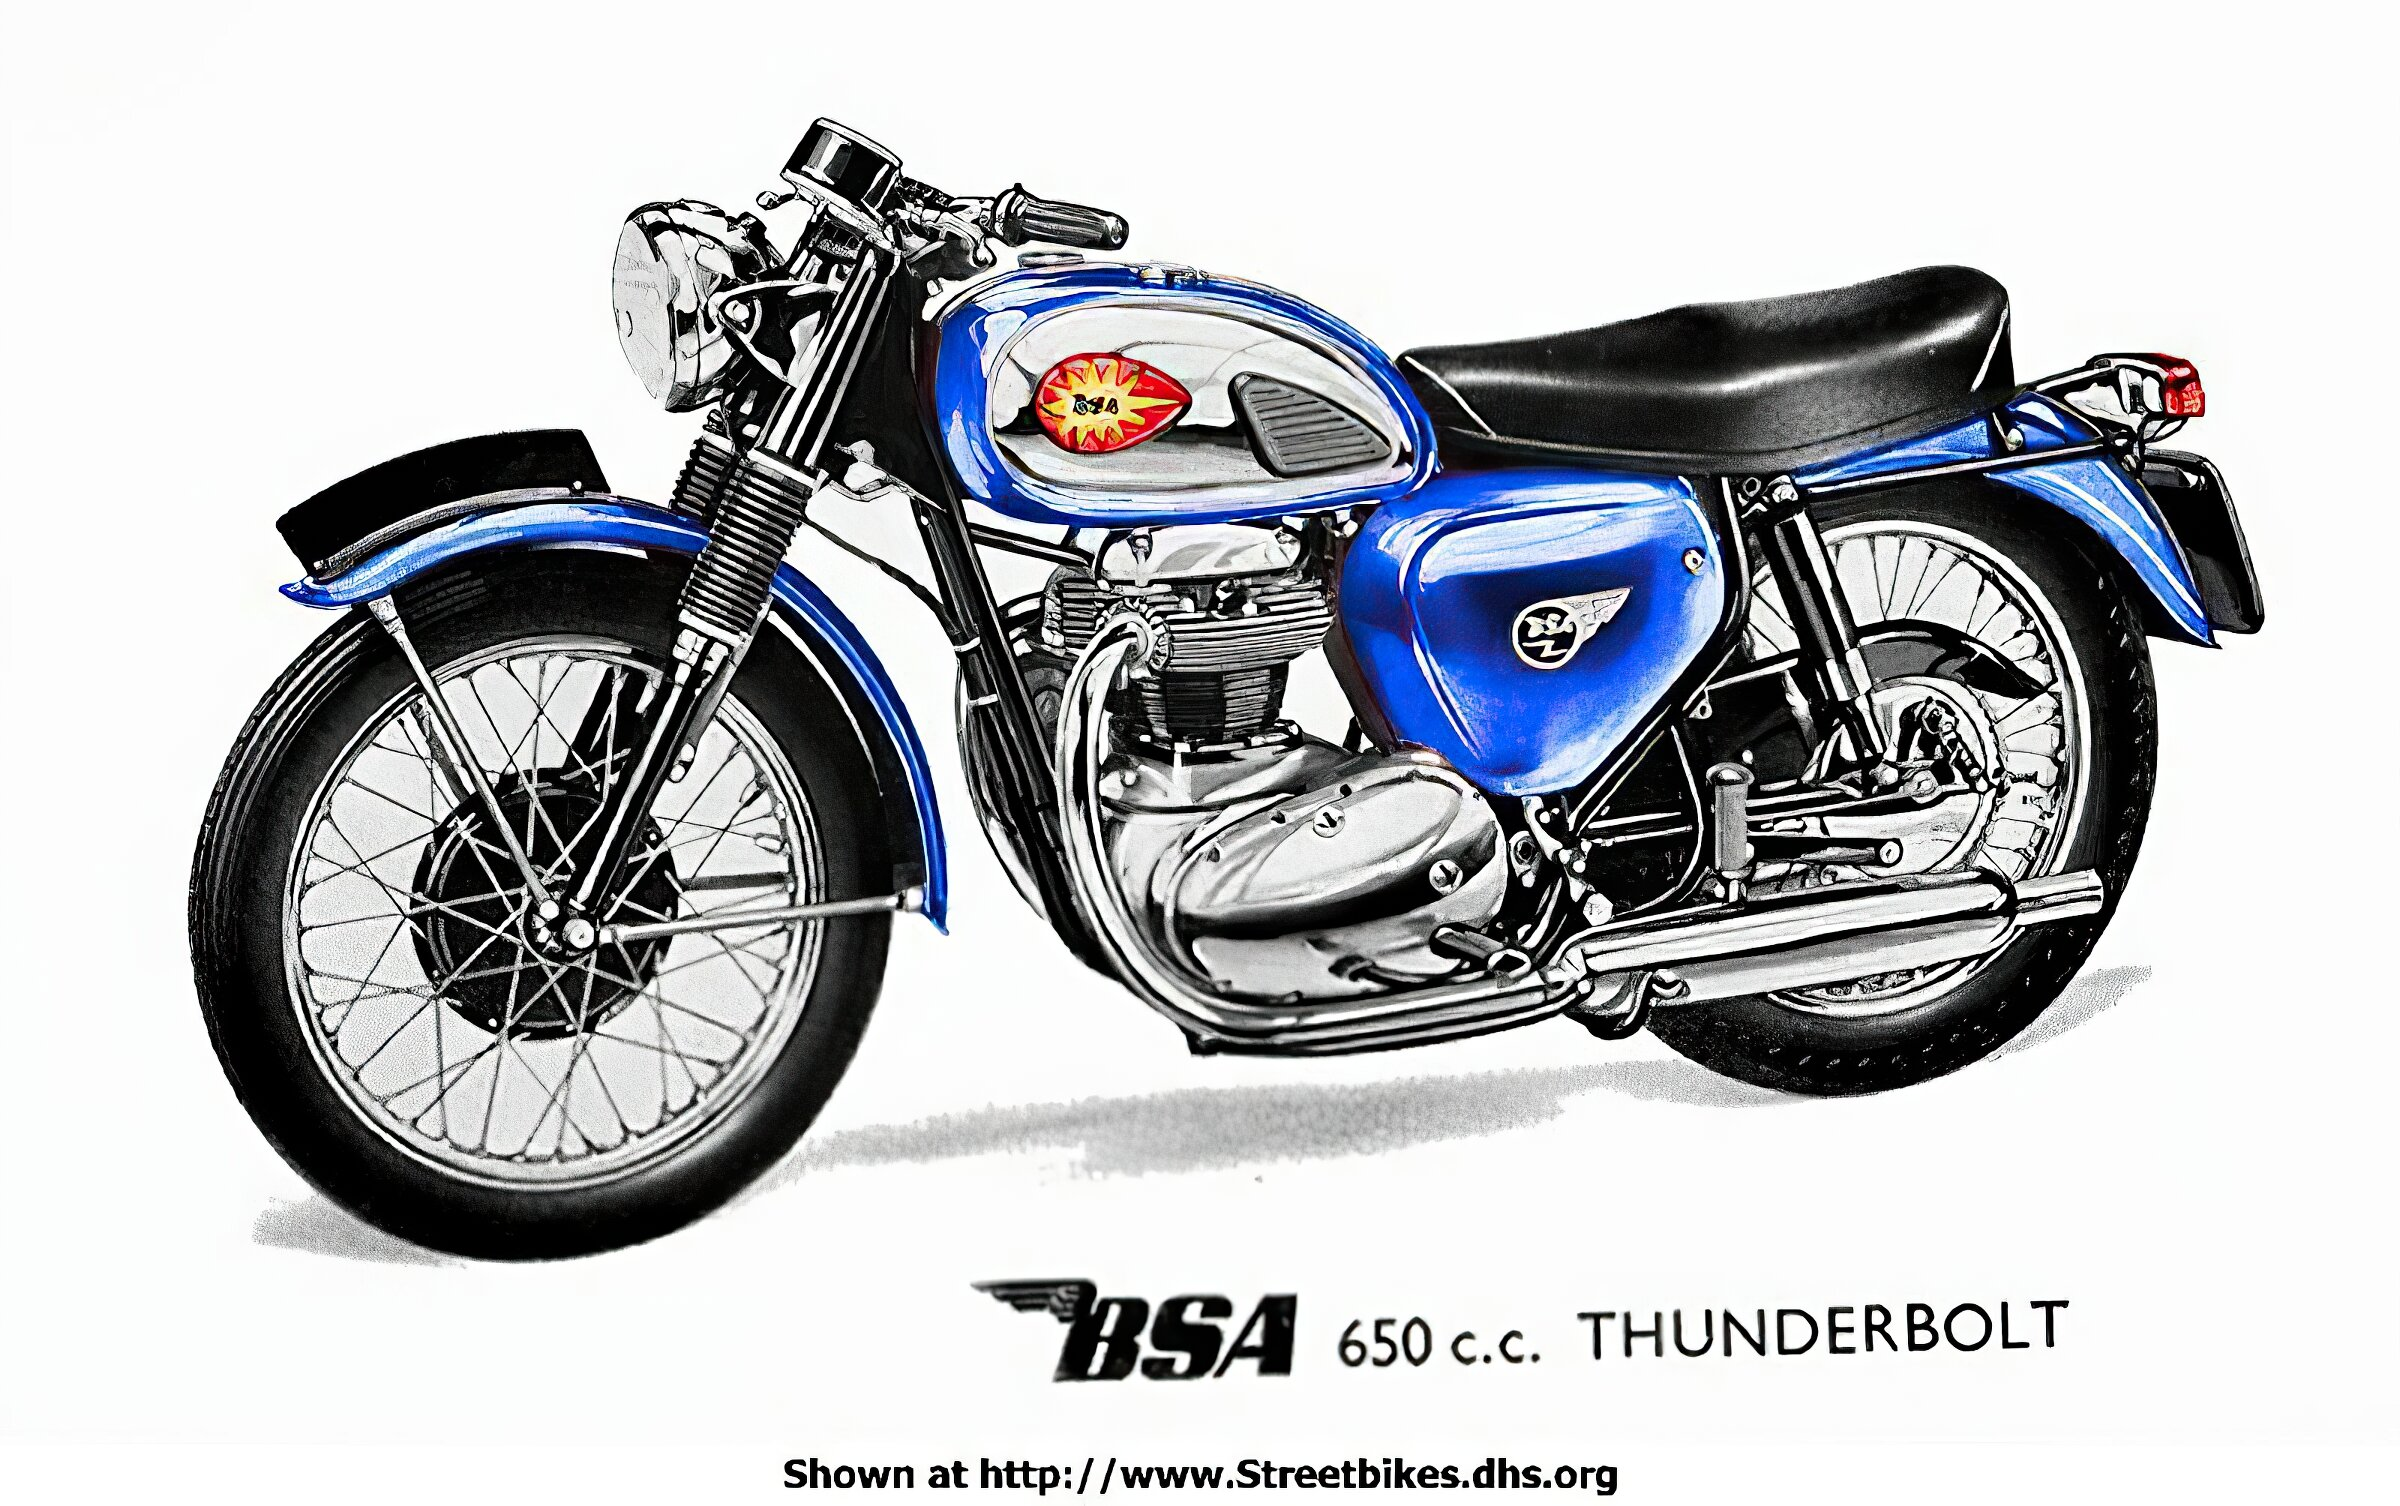 BSA 650 Series - ID: 732